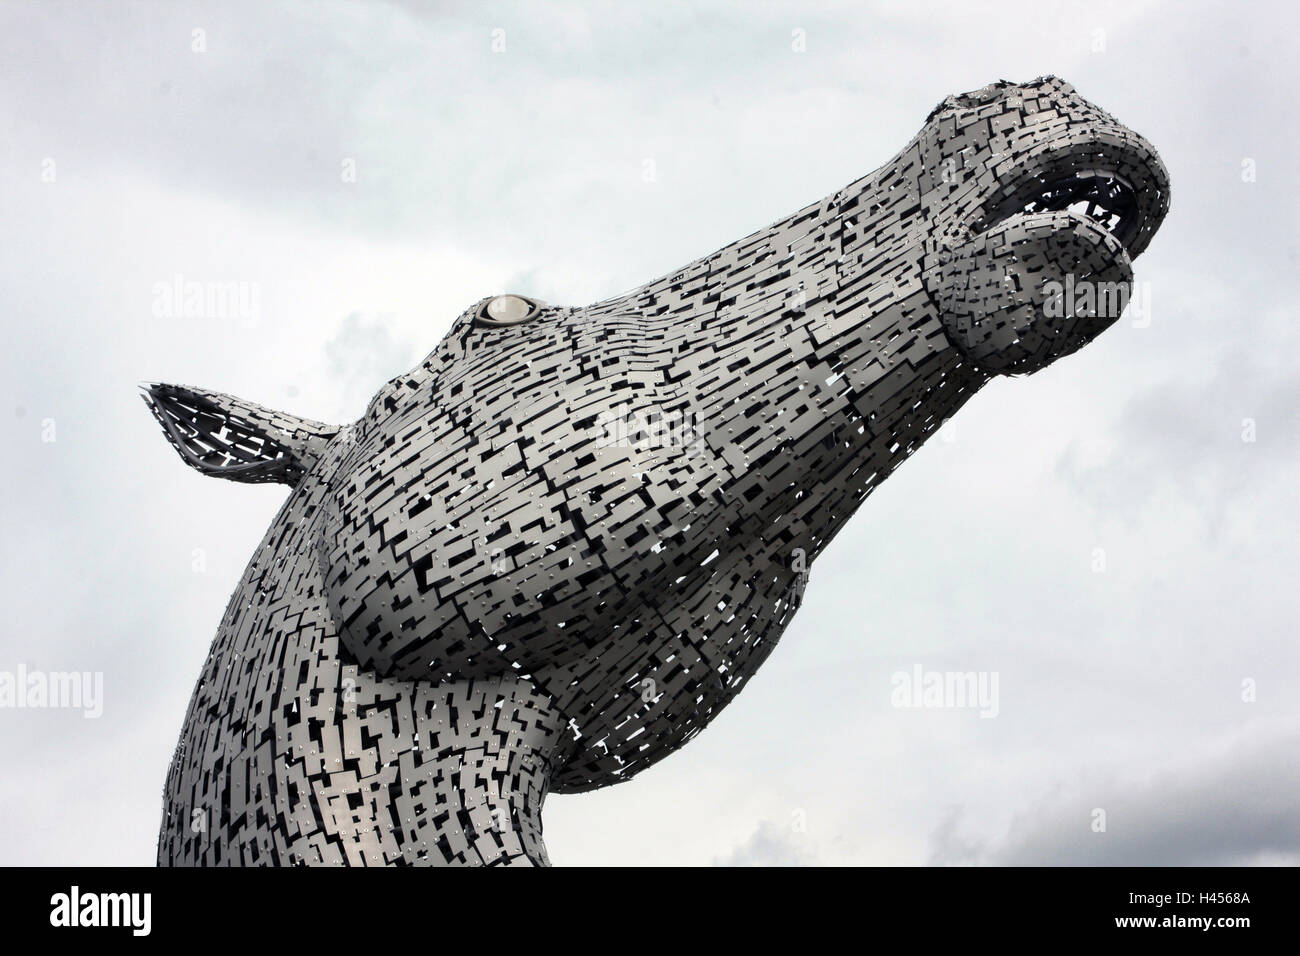 The head of one of the Kelpie sculptures in Falkirk. It is the work of Andy Scott. - Stock Image